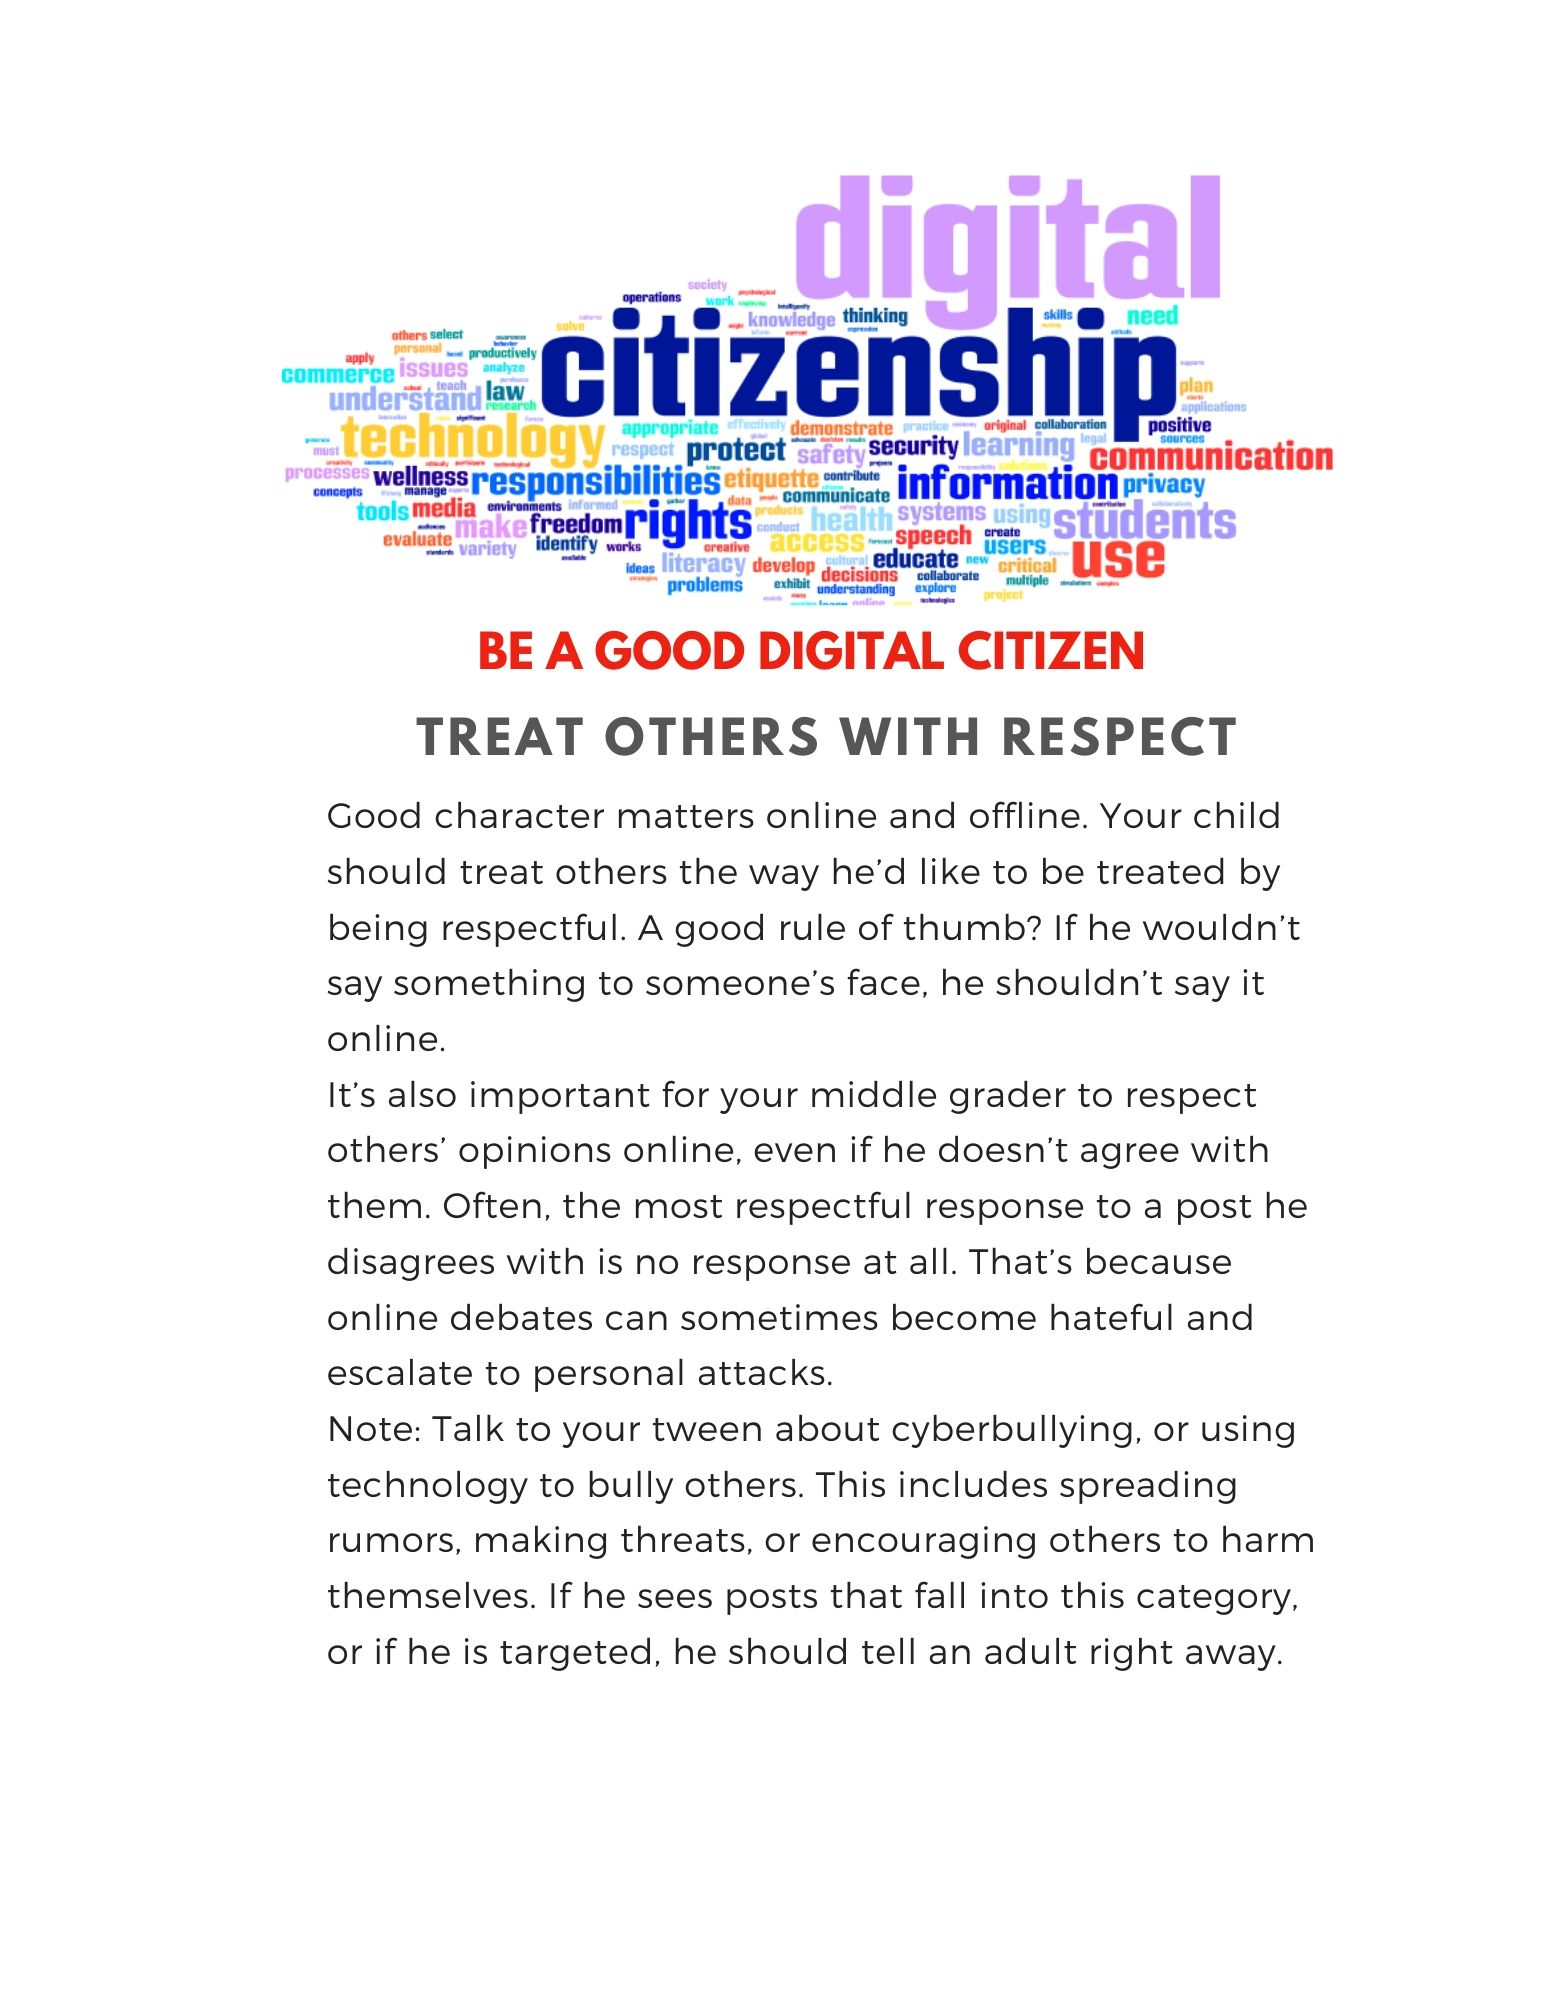 1580314287-digital_citizenship_treat_others_w_respect